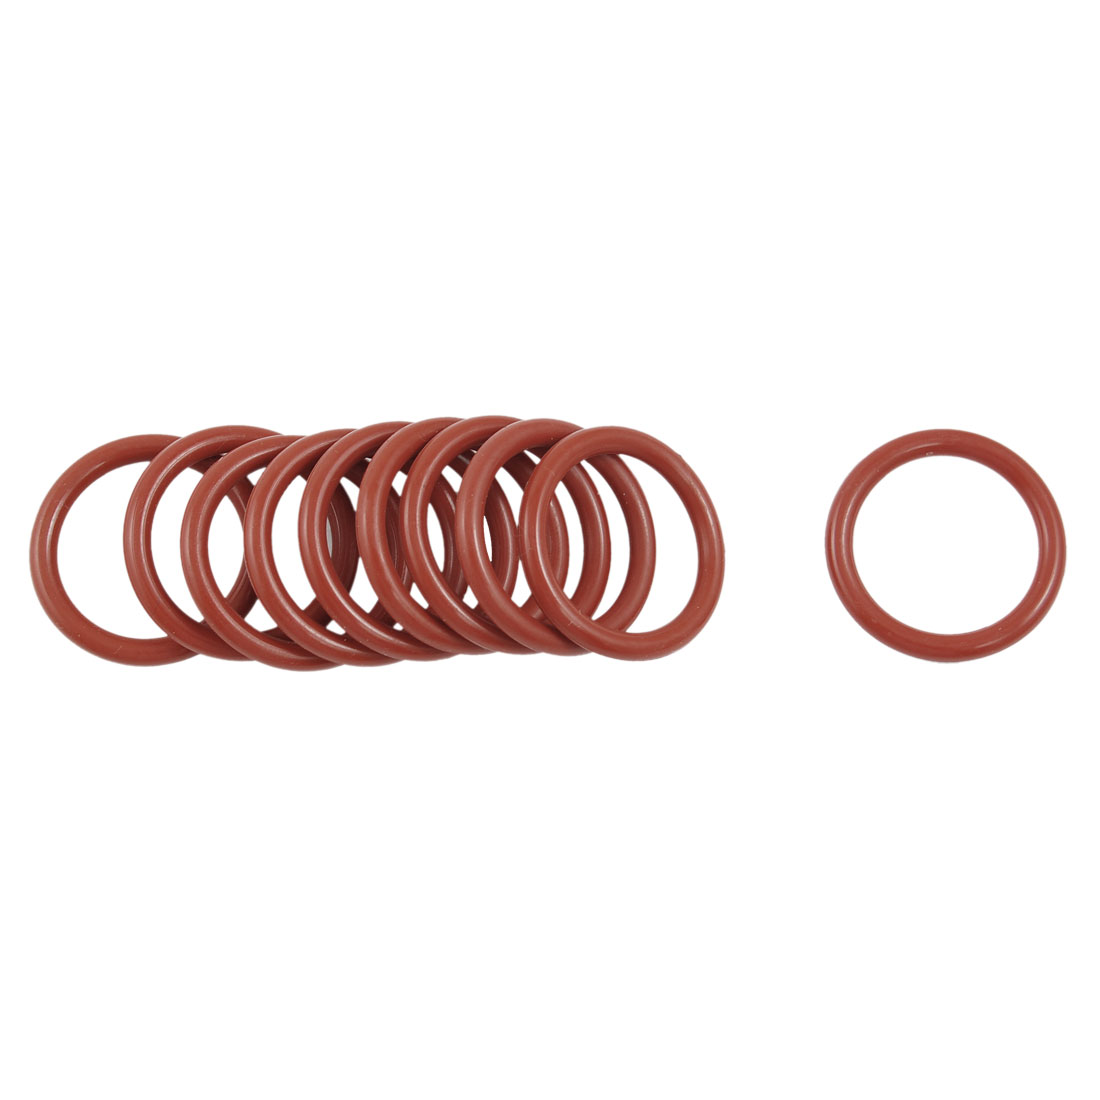 10 Pcs 26mm OD 3mm Thickness Dark Red Silicone O Rings Oil Seals Gasket